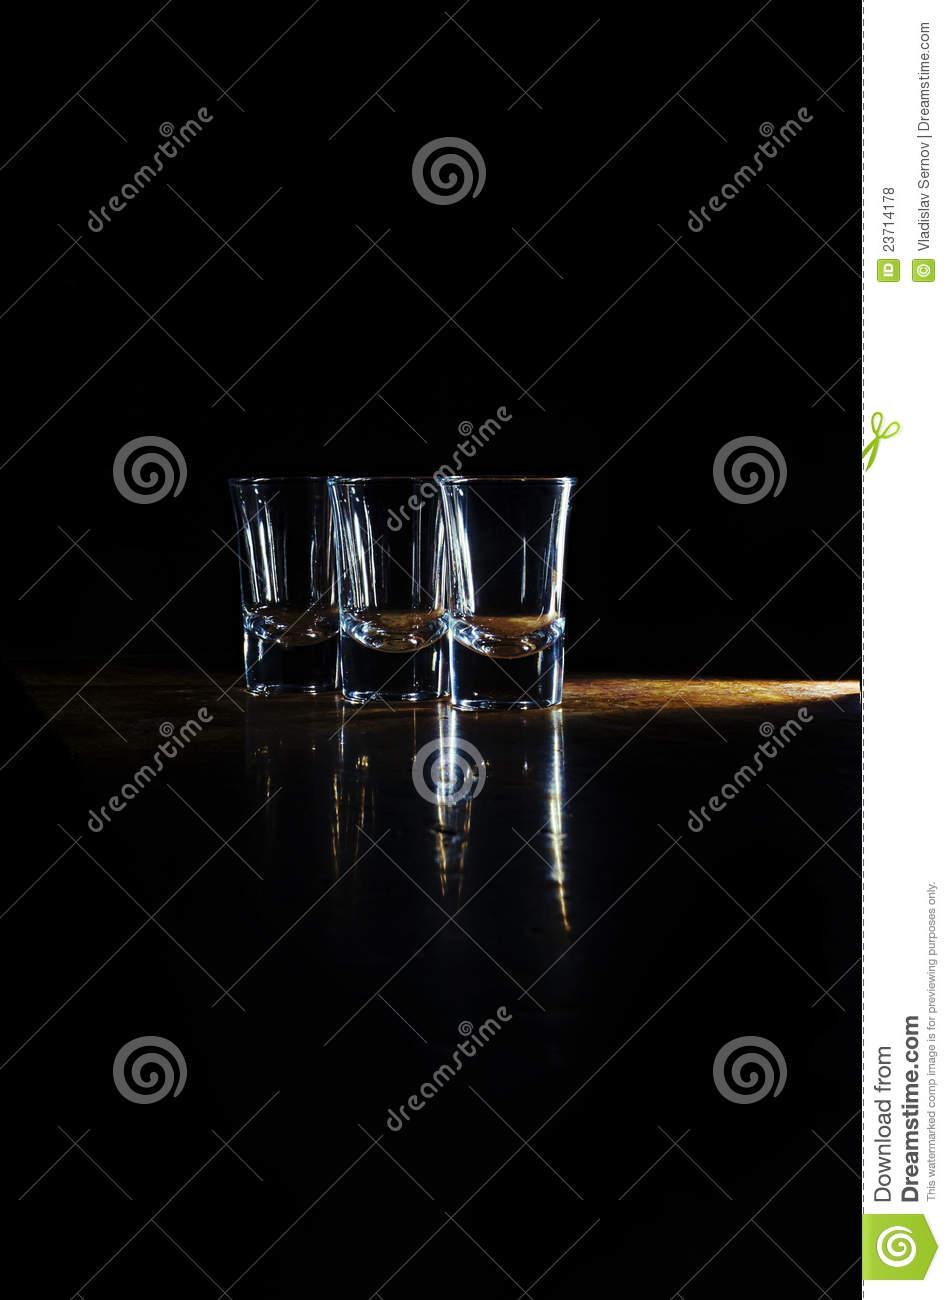 Glasses on the bar